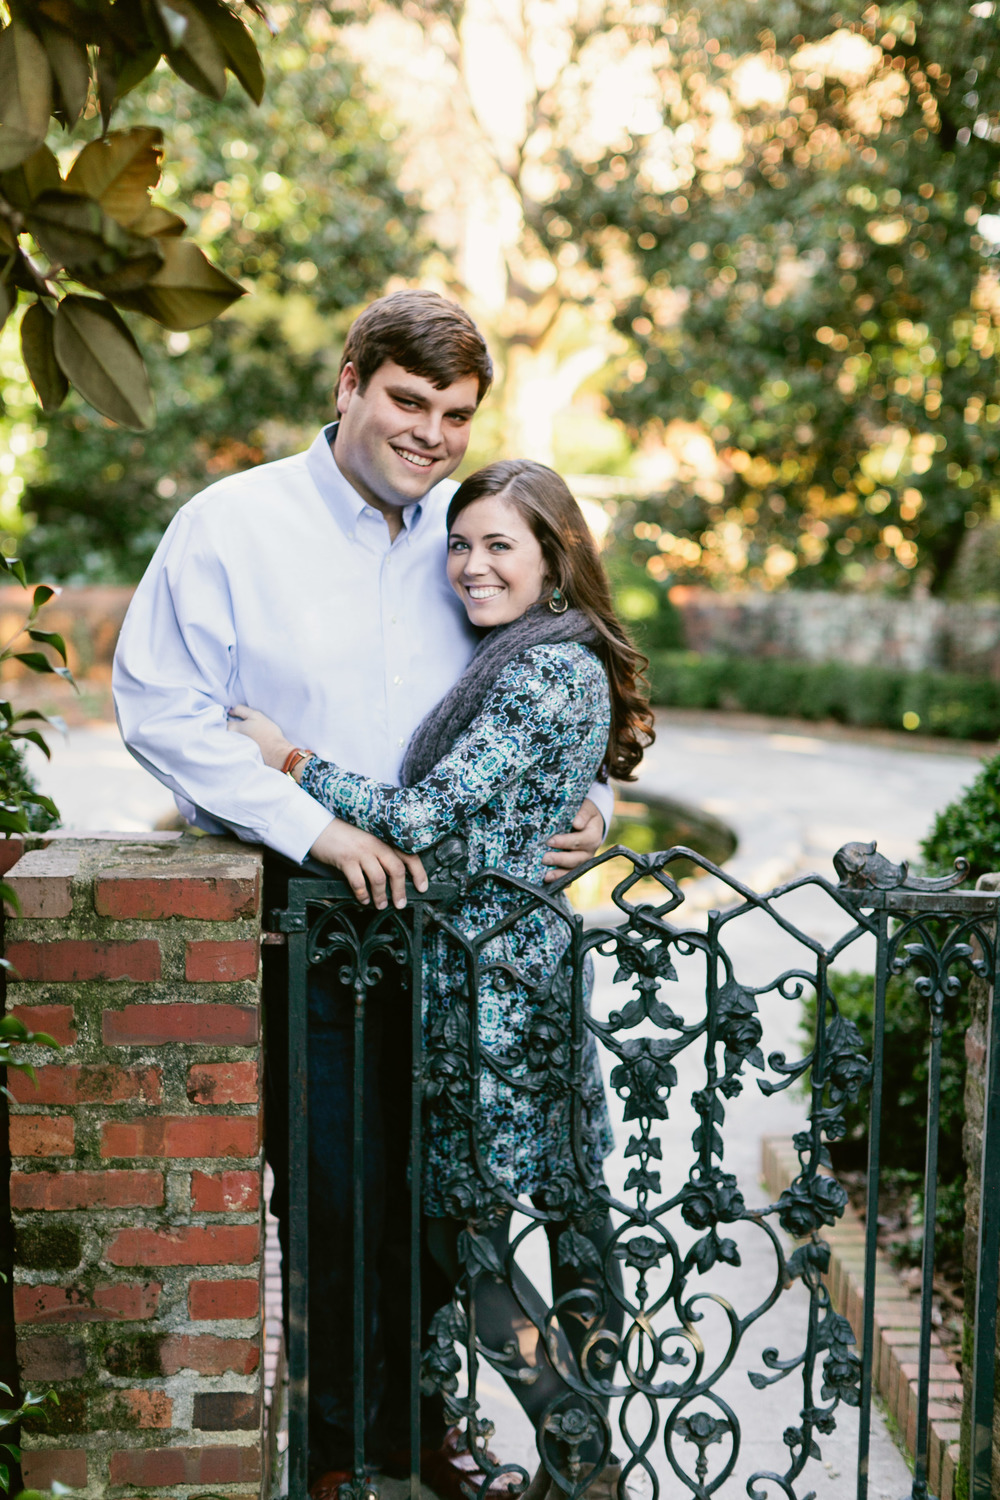 Atlanta-Engagement-Photographer-Athens-Georgia-Jittery-Joes-downtown-Athens-Founders-Memorial-Garden-31.jpg